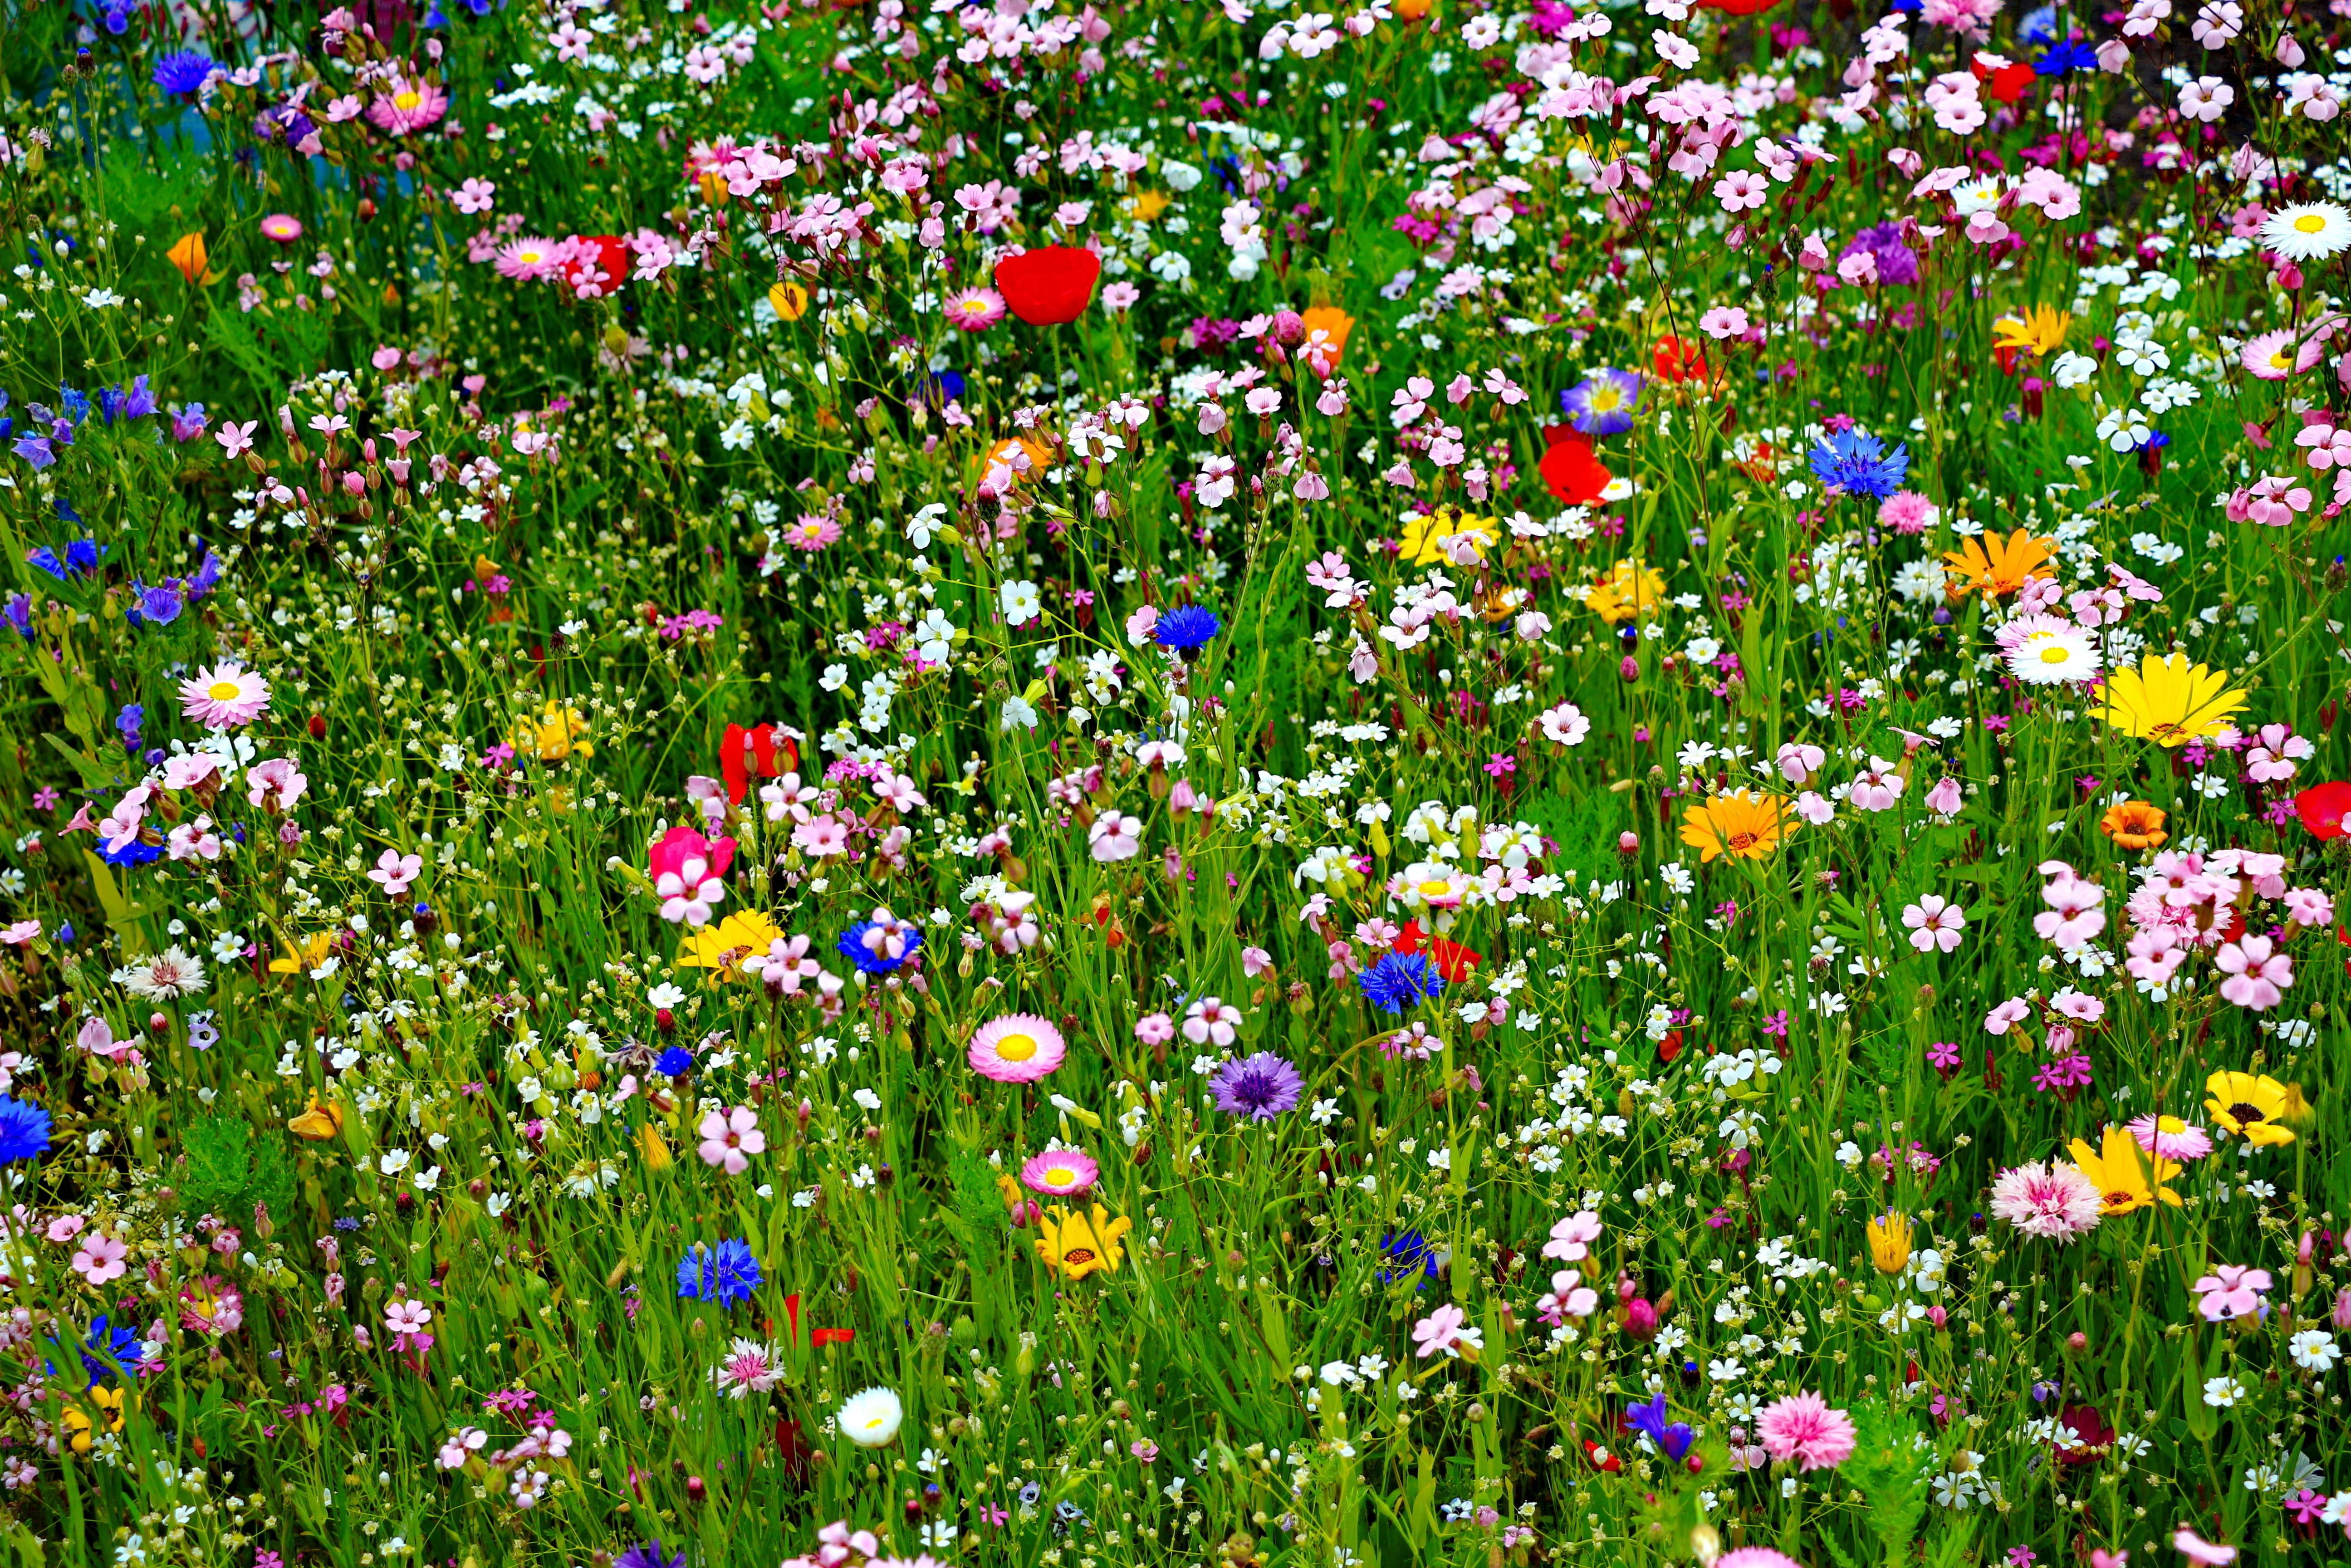 Free Colorful Flower Wallpaper Downloads: Colorful HD Wallpapers And Colorful Desktop Backgrounds Up